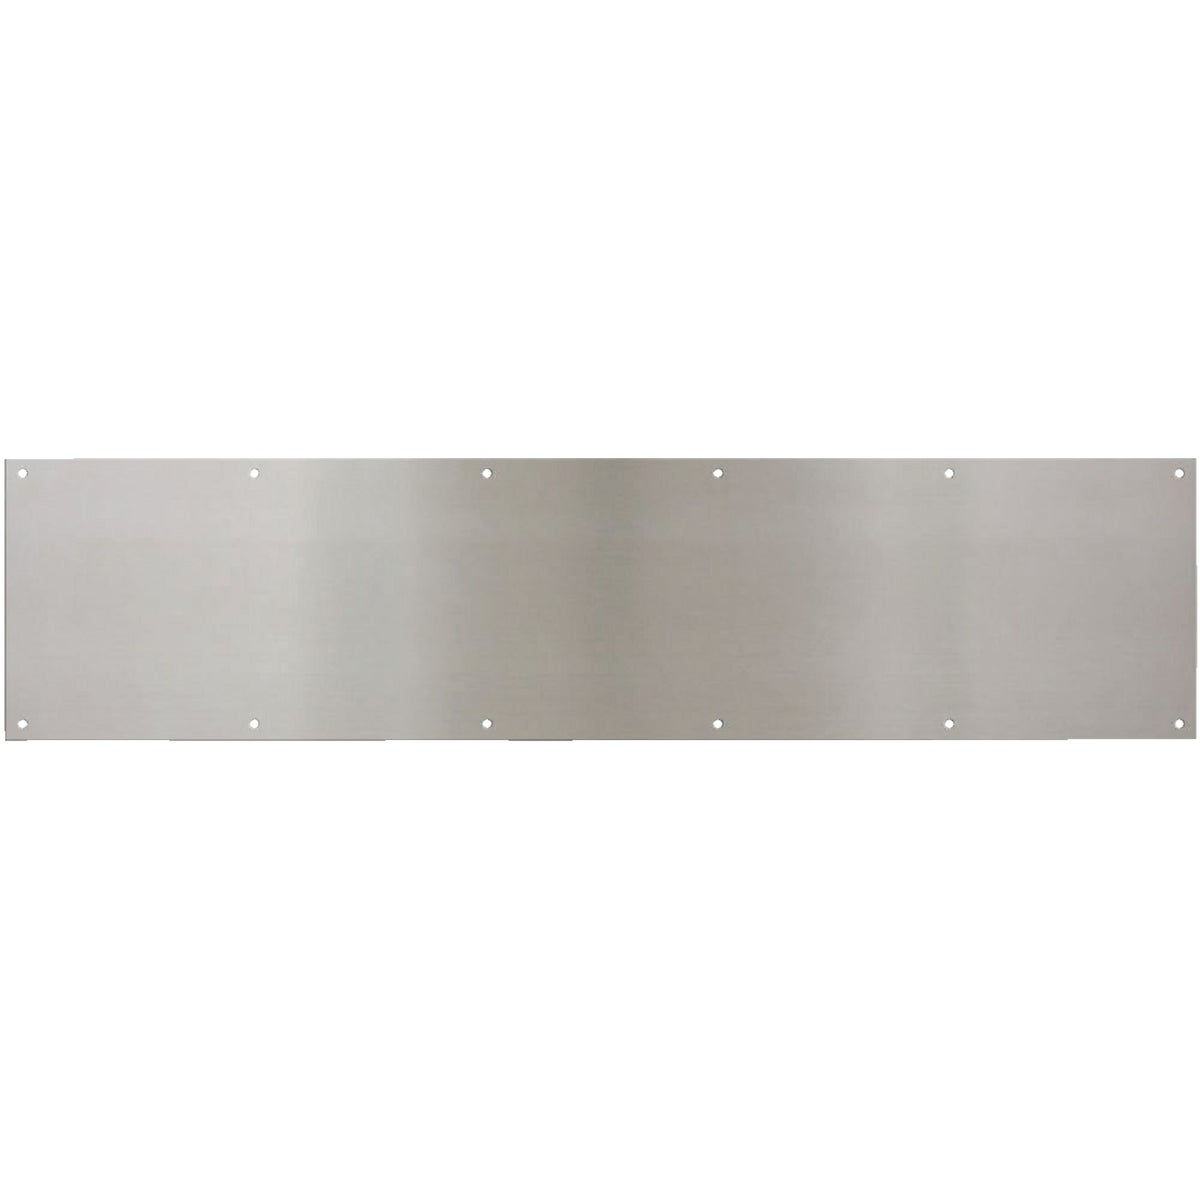 "8X34"" SN KICKPLATE - N325431 by National Mfg Co"